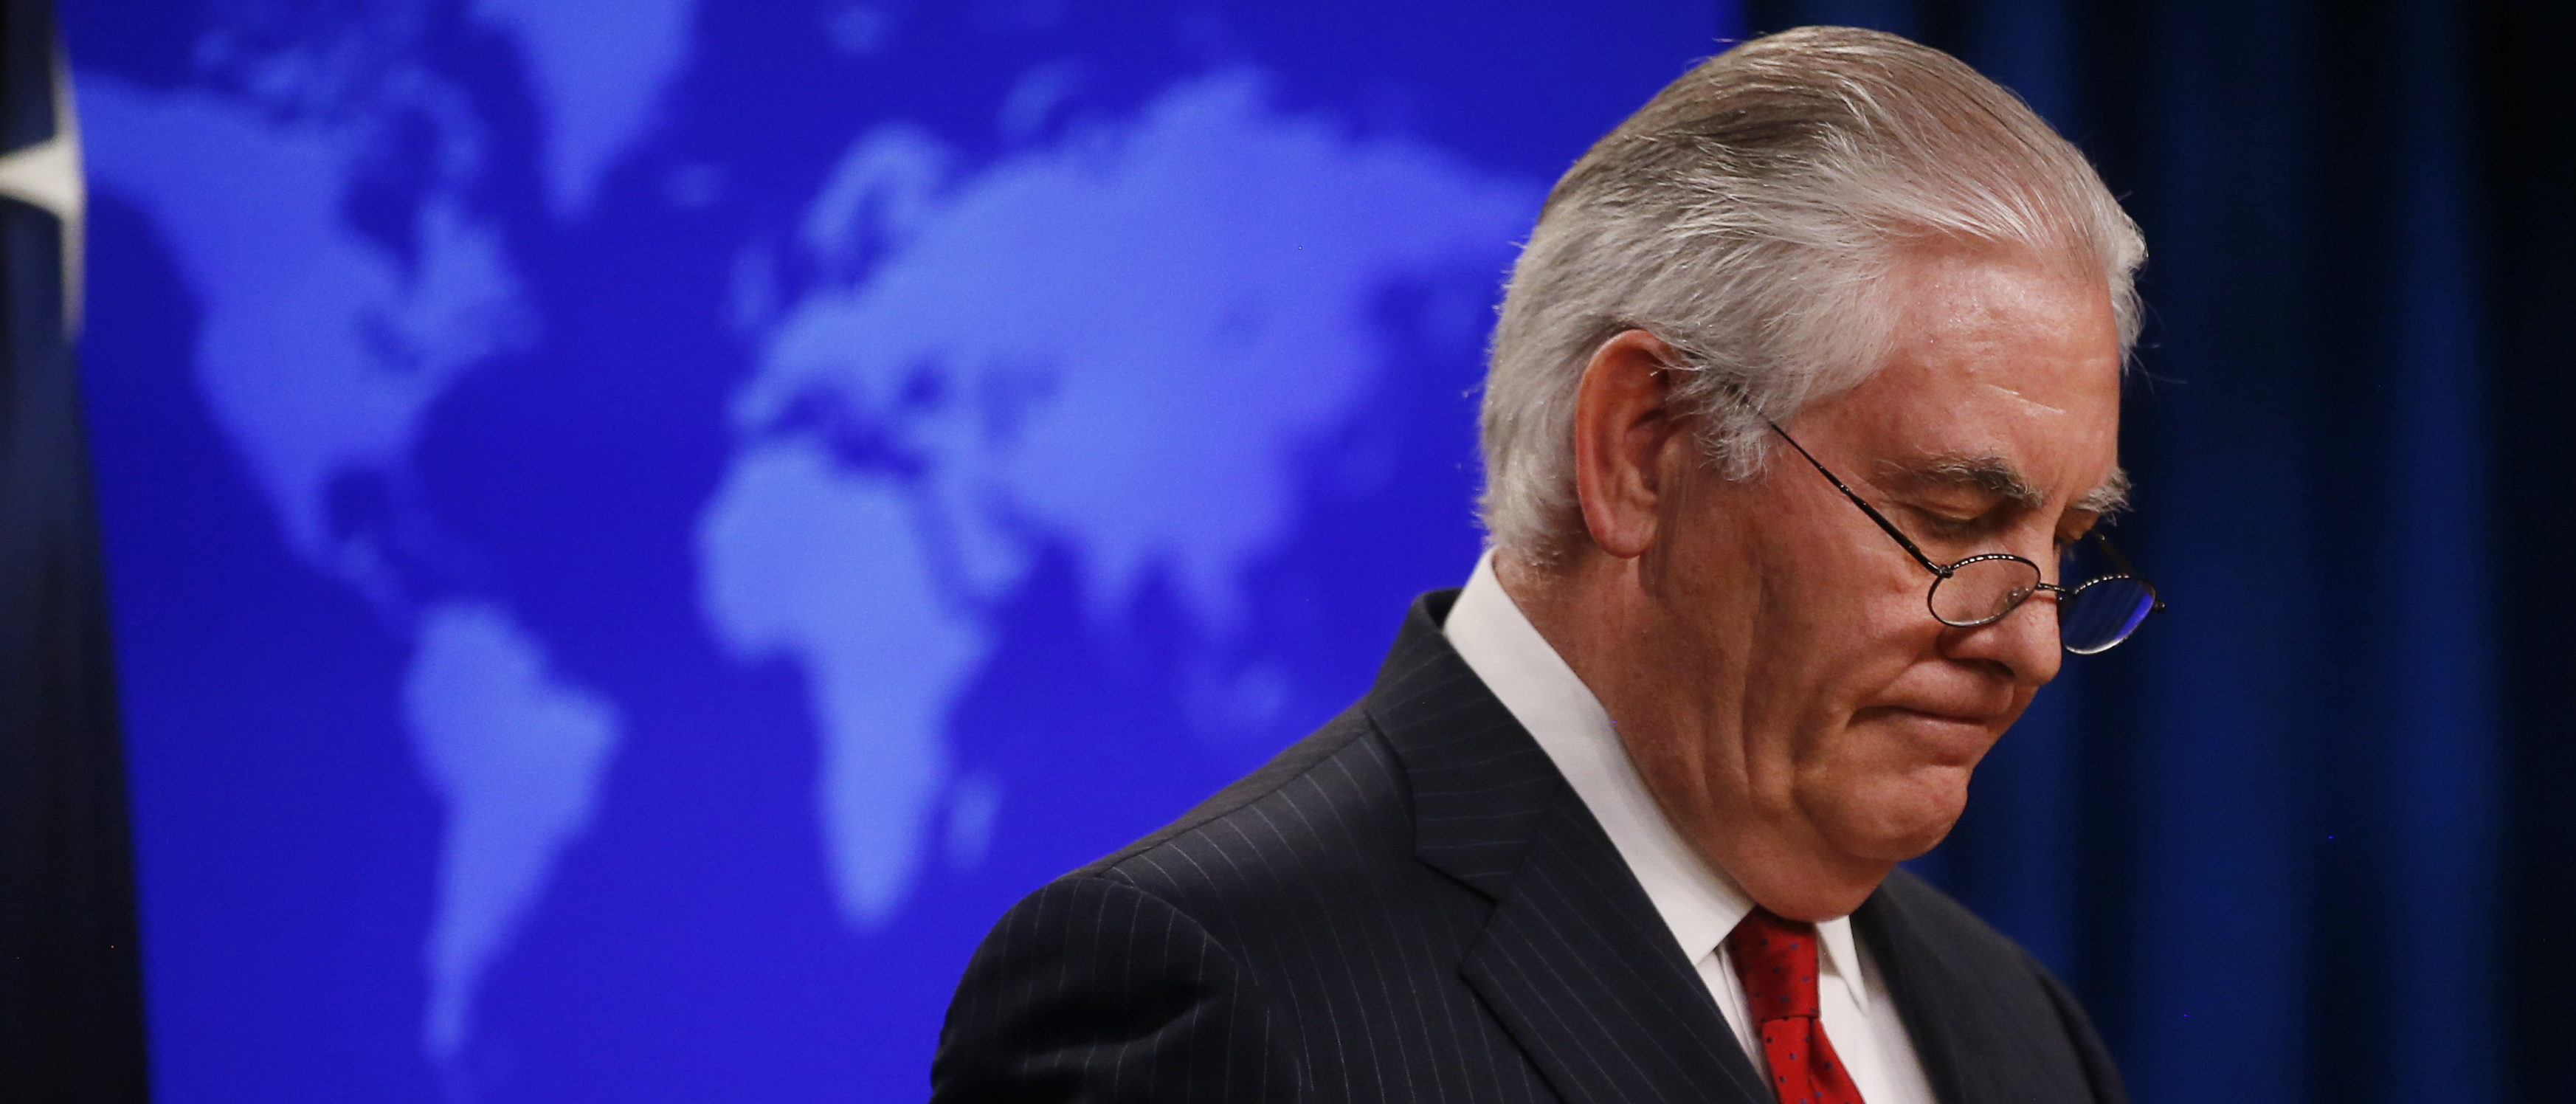 U.S. Secretary of State Rex Tillerson speaks to the media at the U.S. State Department after being fired by President Donald Trump in Washington, U.S. March 13, 2018. REUTERS/Leah Millis